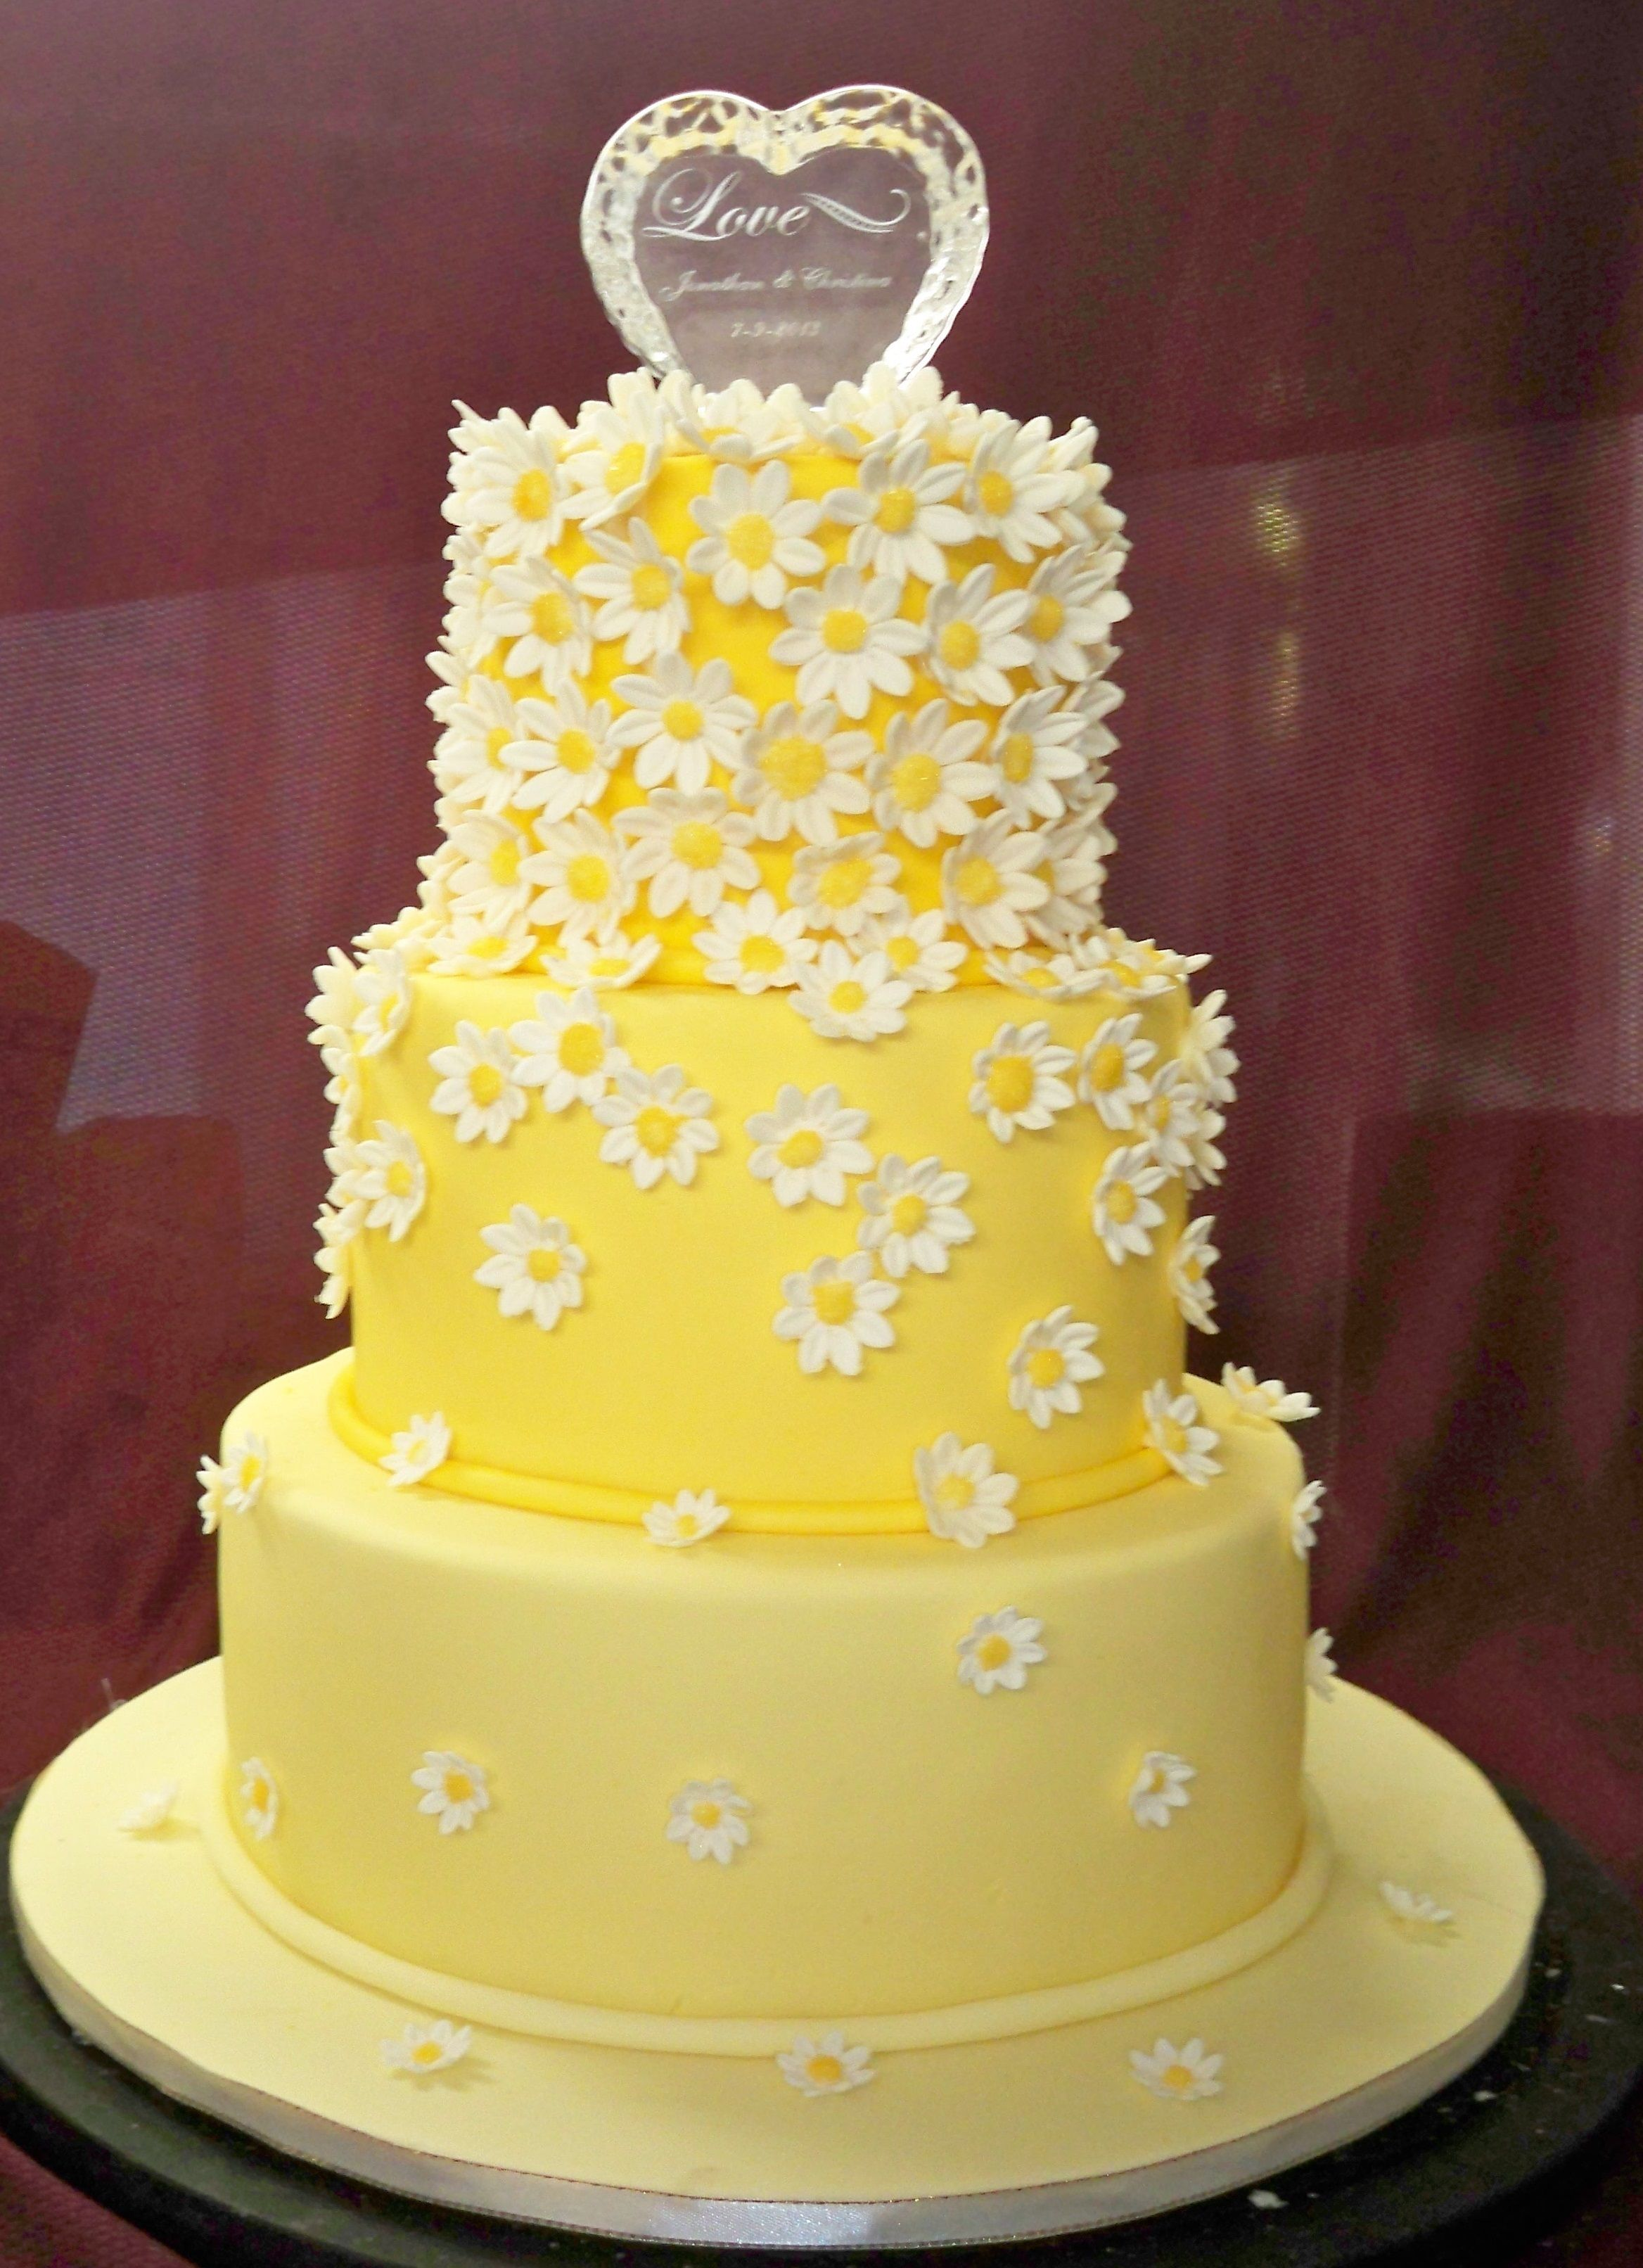 Pin by Elisabeth Cakes on wedding cakes with fondant icing ...